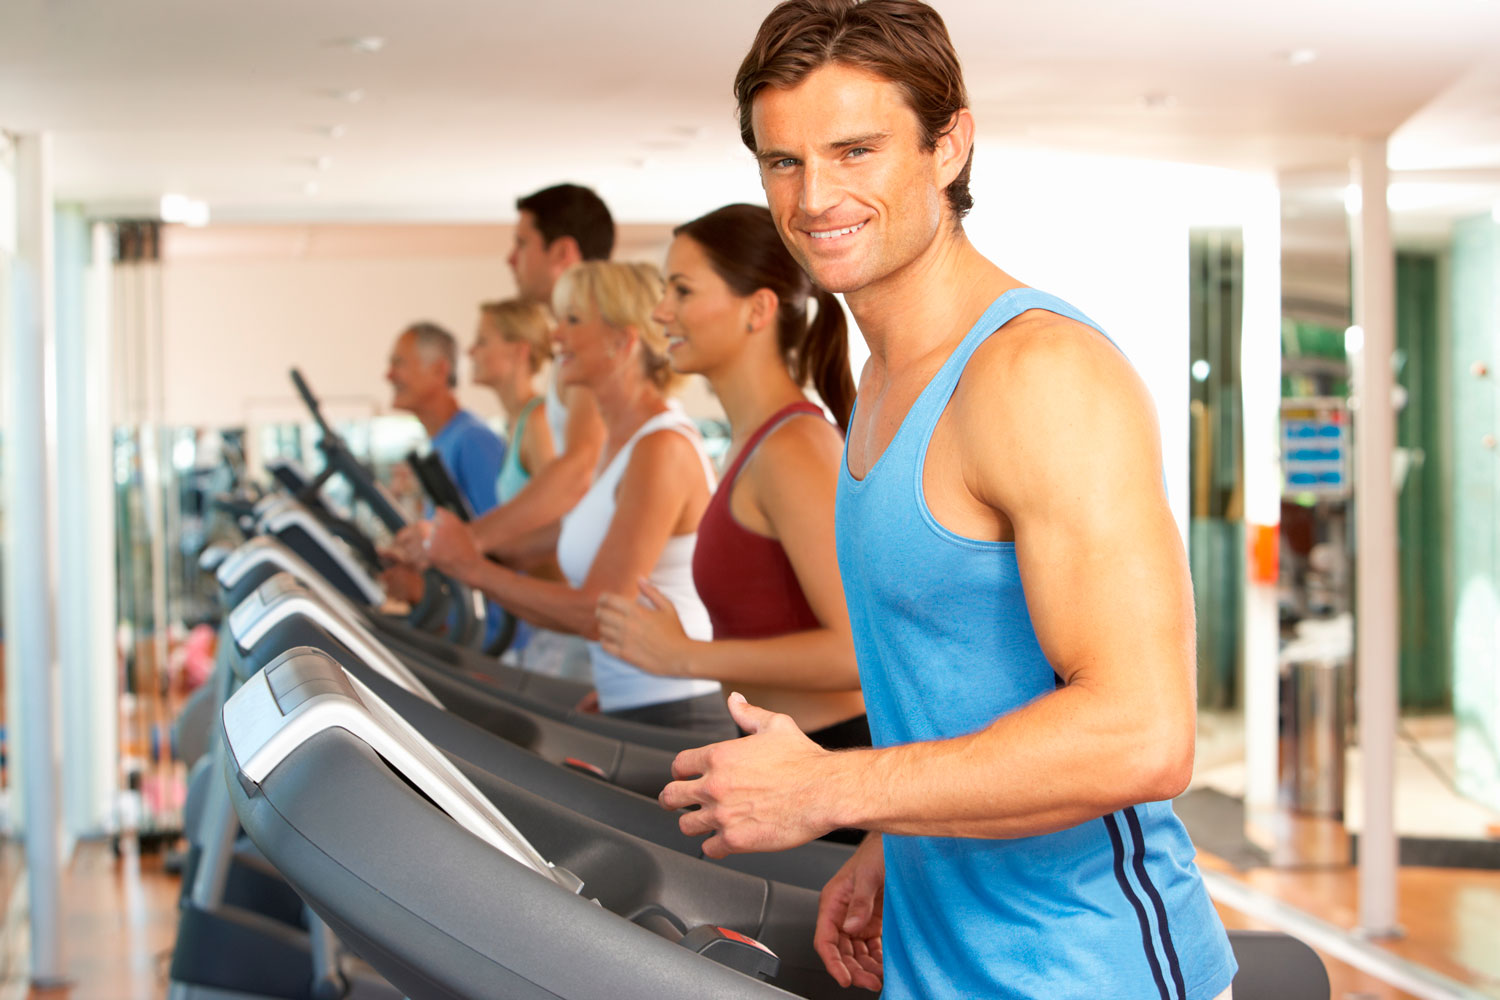 How Watertight Is Your Gym Membership Contract?